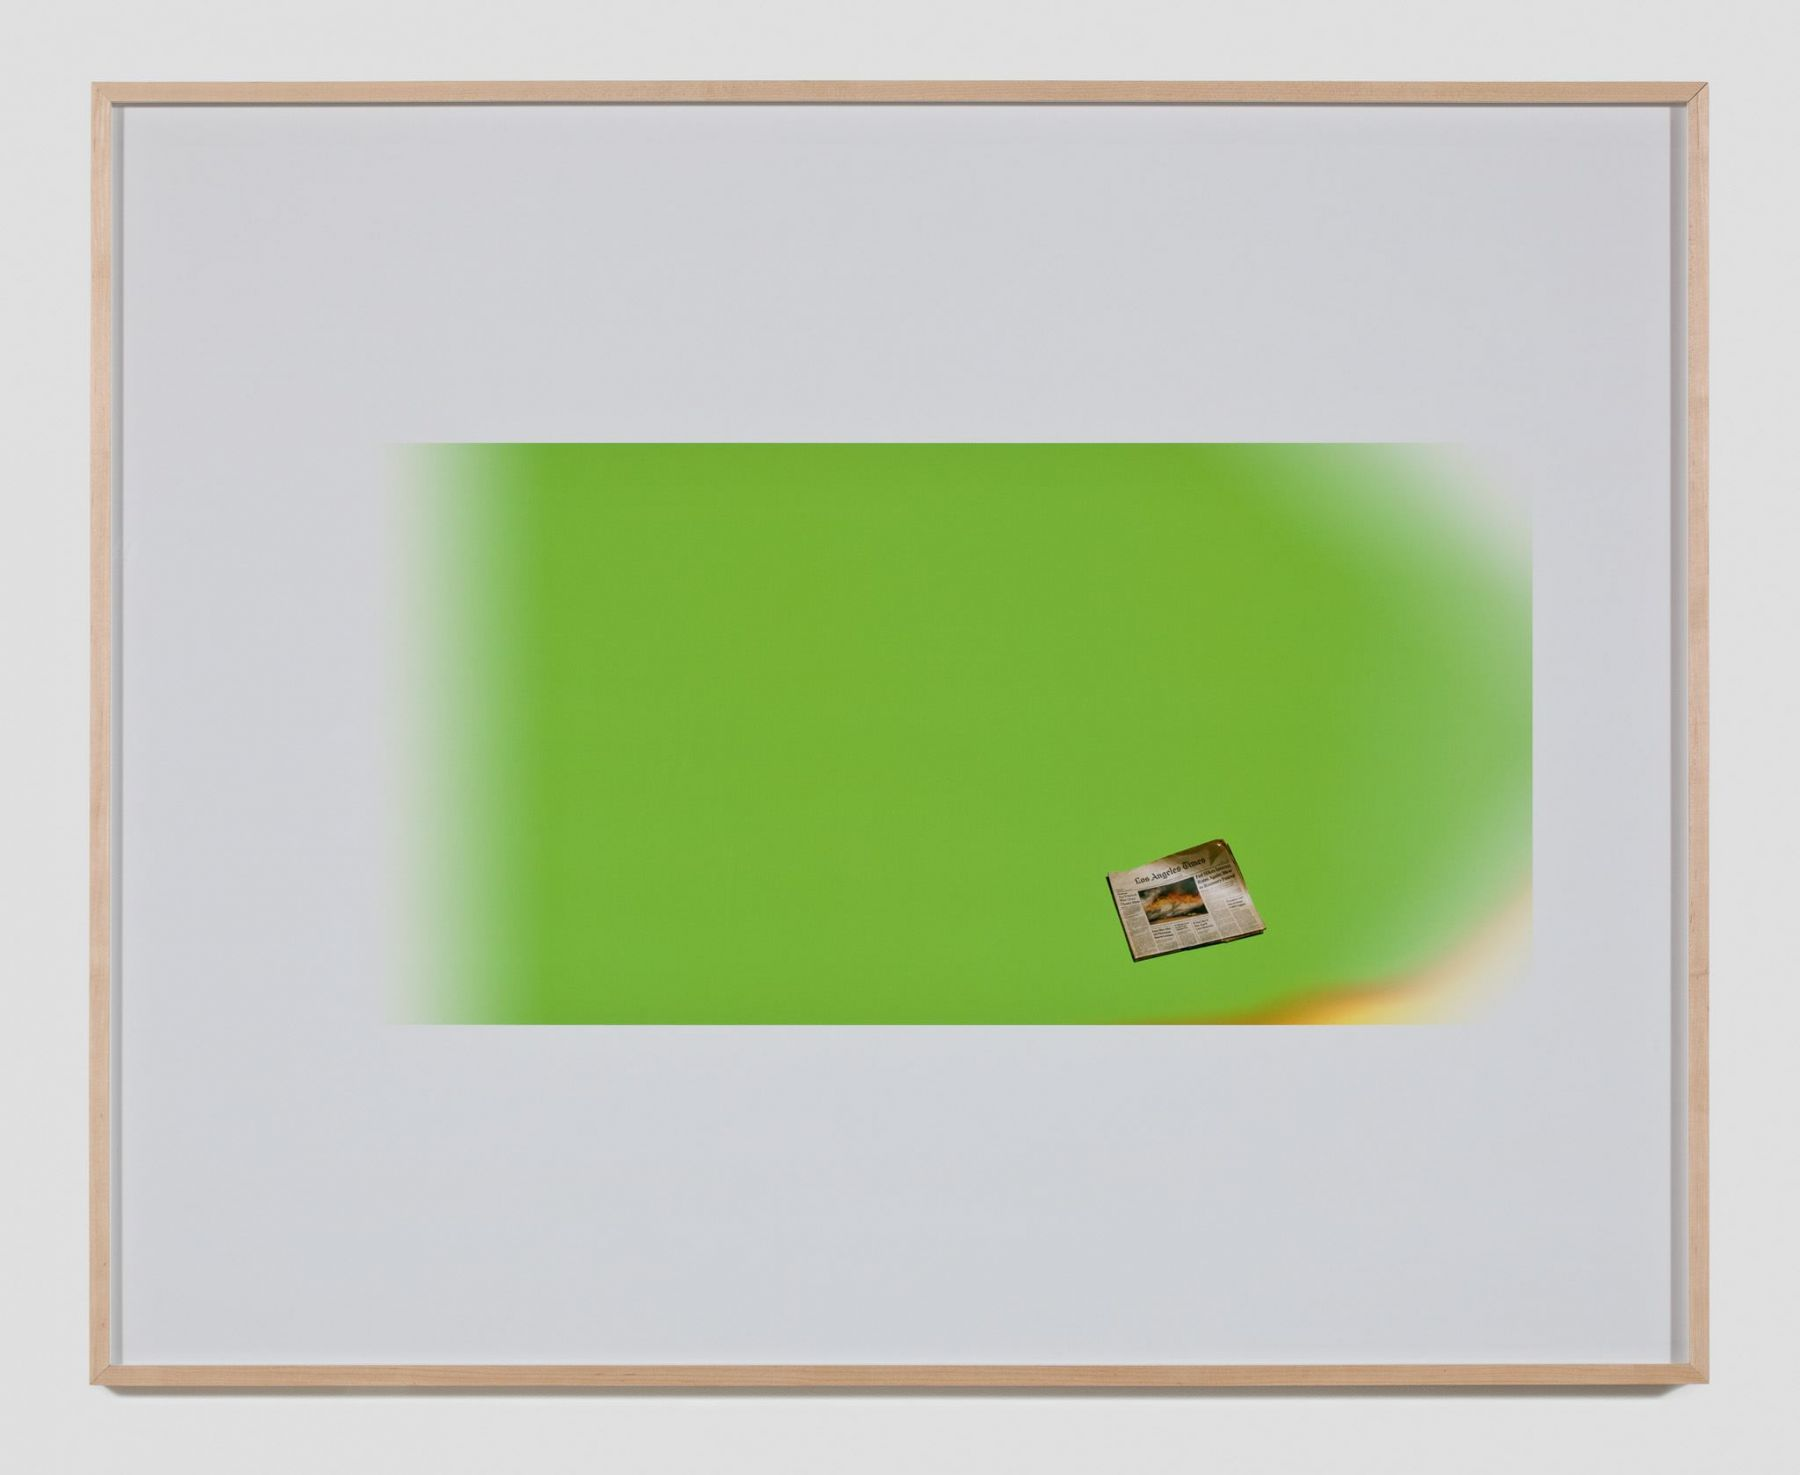 Larry Johnson, Untitled Green Screen Memory (Los Angeles Times), 2010